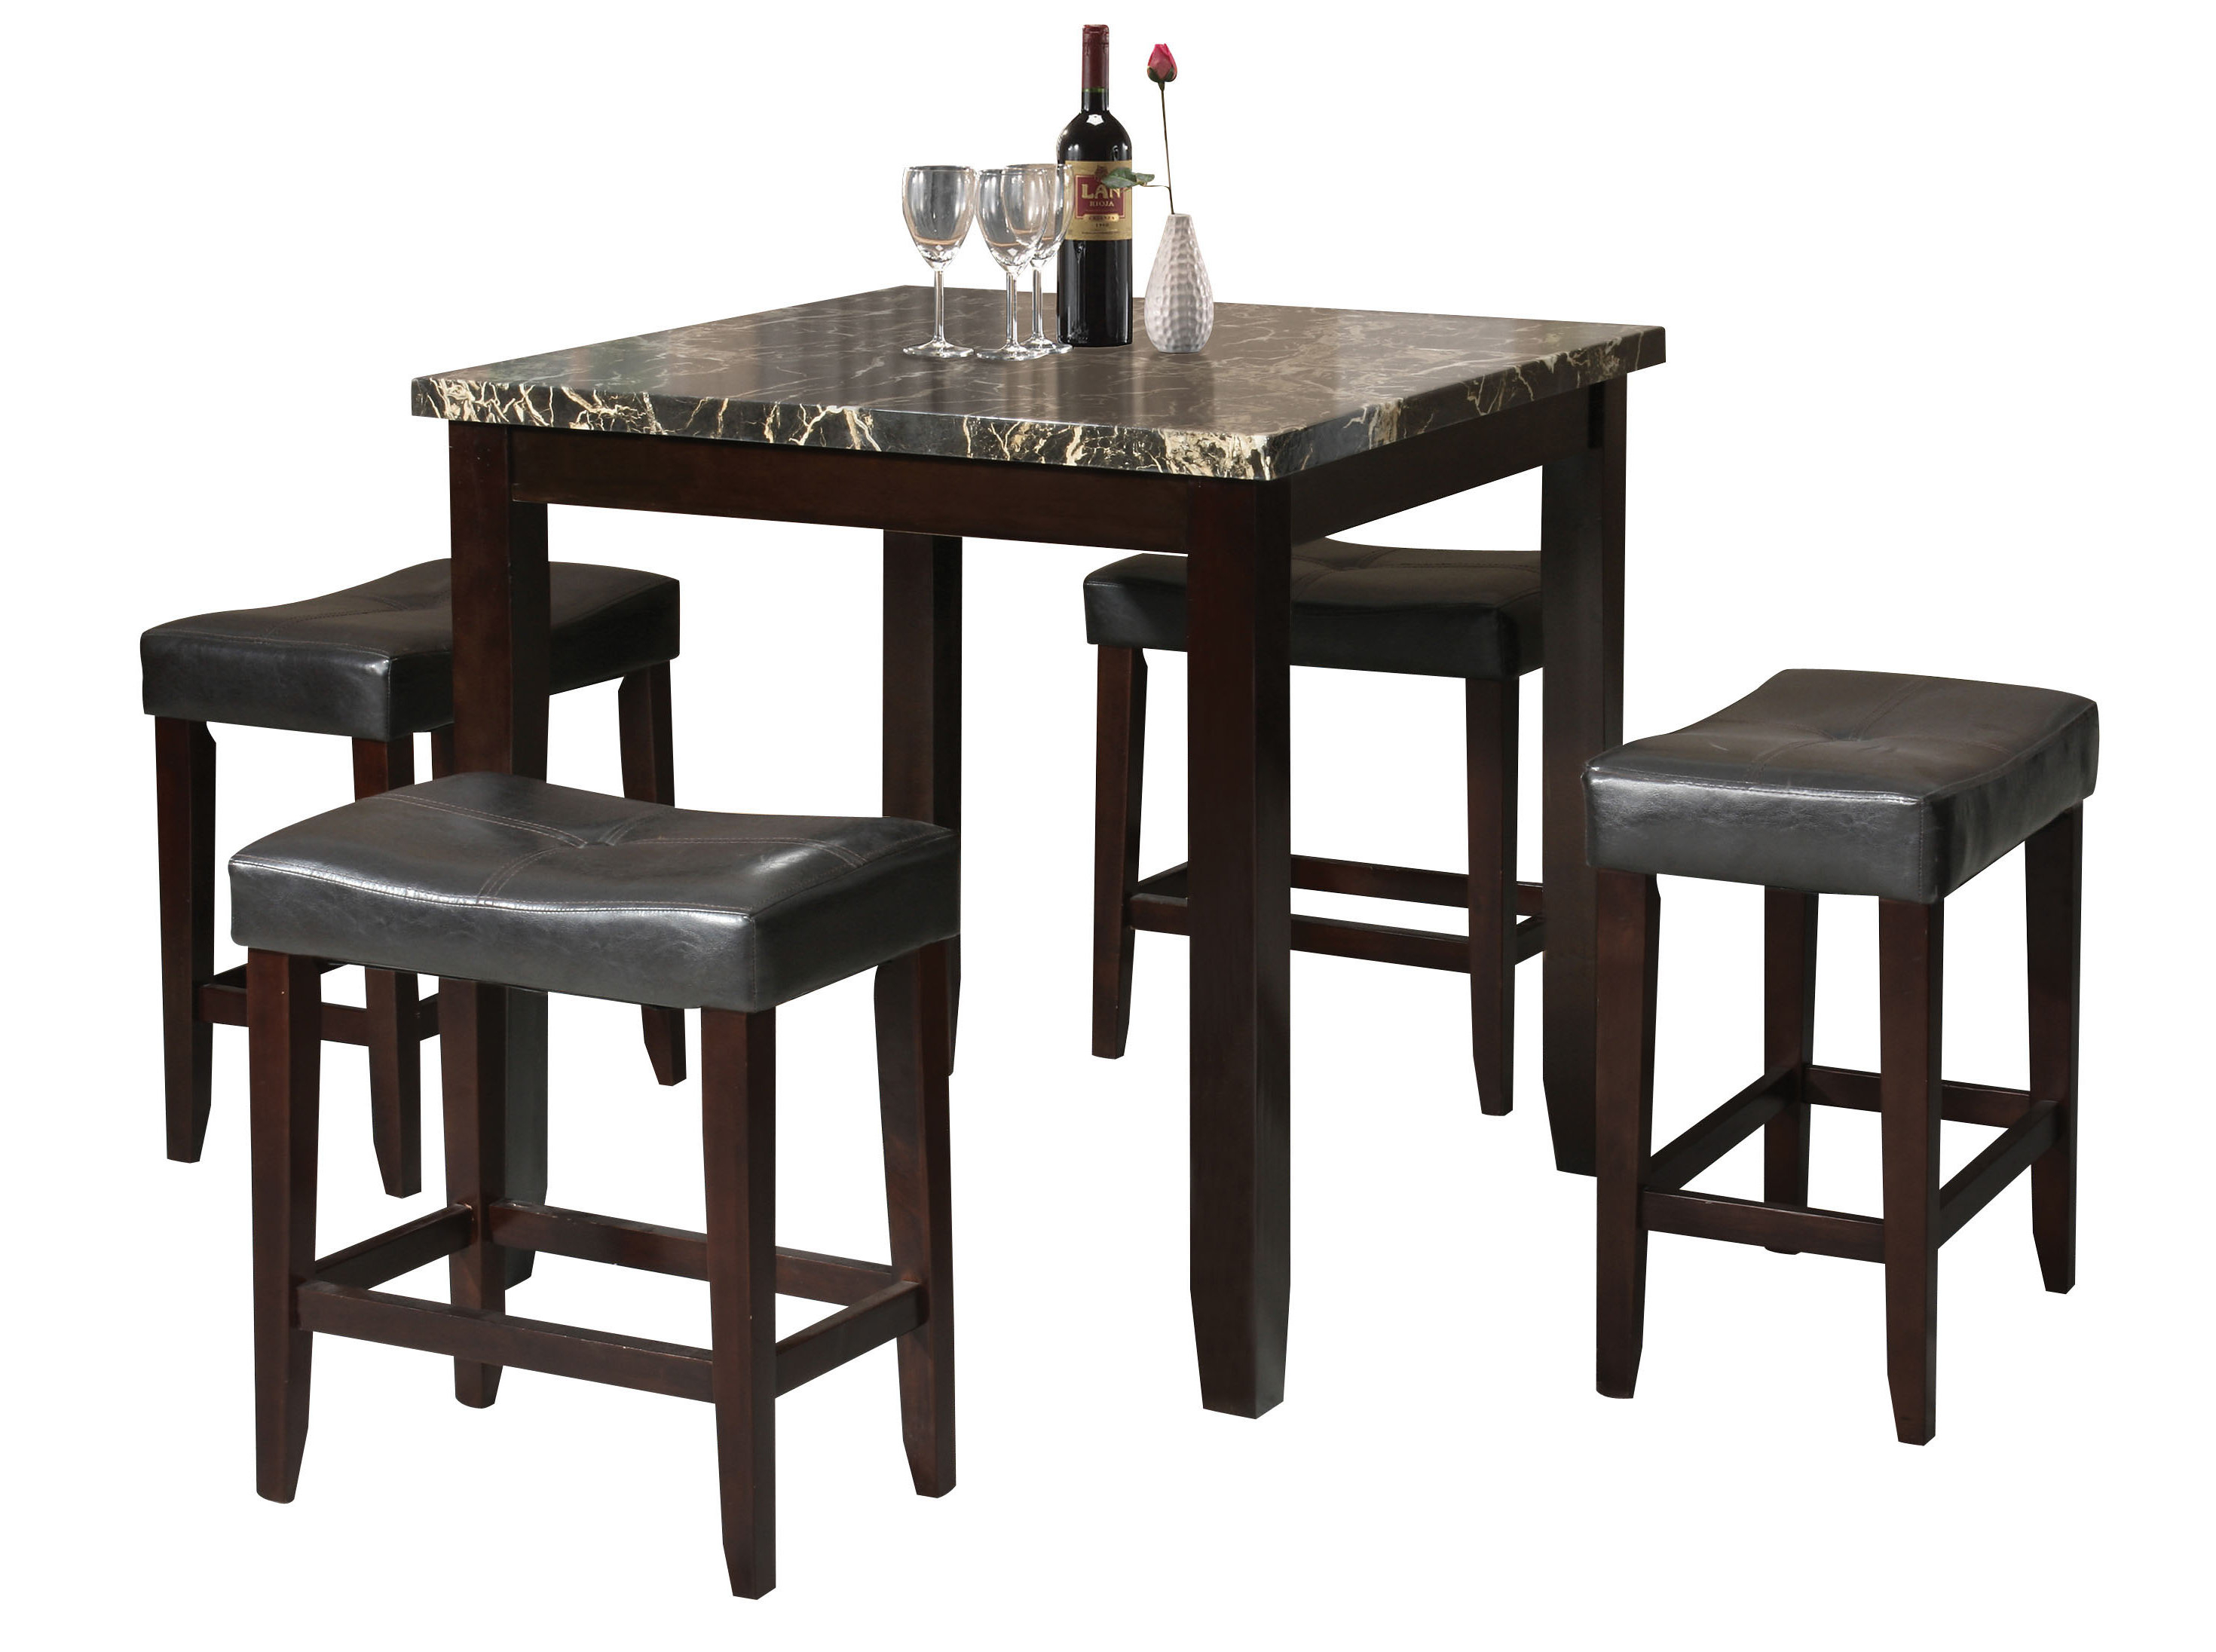 Dehaven 5 Piece Counter Height Dining Set With Regard To 2017 Sheetz 3 Piece Counter Height Dining Sets (View 14 of 20)